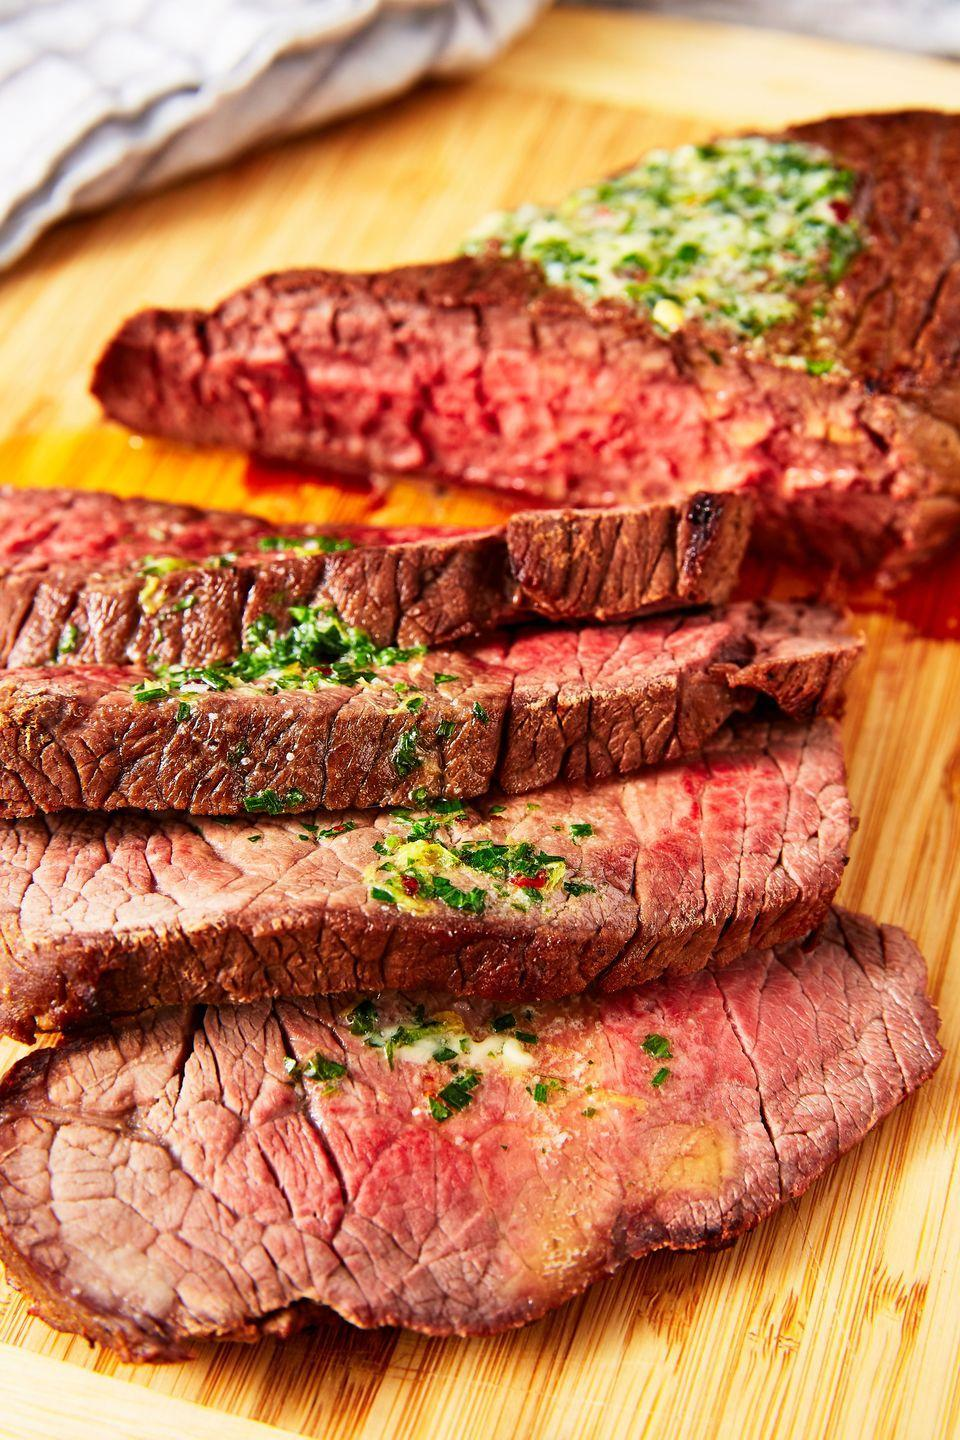 """<p>This old-school cooking technique is our new fave.</p><p>Get the recipe from <a href=""""https://www.delish.com/cooking/recipe-ideas/a25621332/london-broil-recipe/"""" rel=""""nofollow noopener"""" target=""""_blank"""" data-ylk=""""slk:Delish"""" class=""""link rapid-noclick-resp"""">Delish</a>. </p>"""